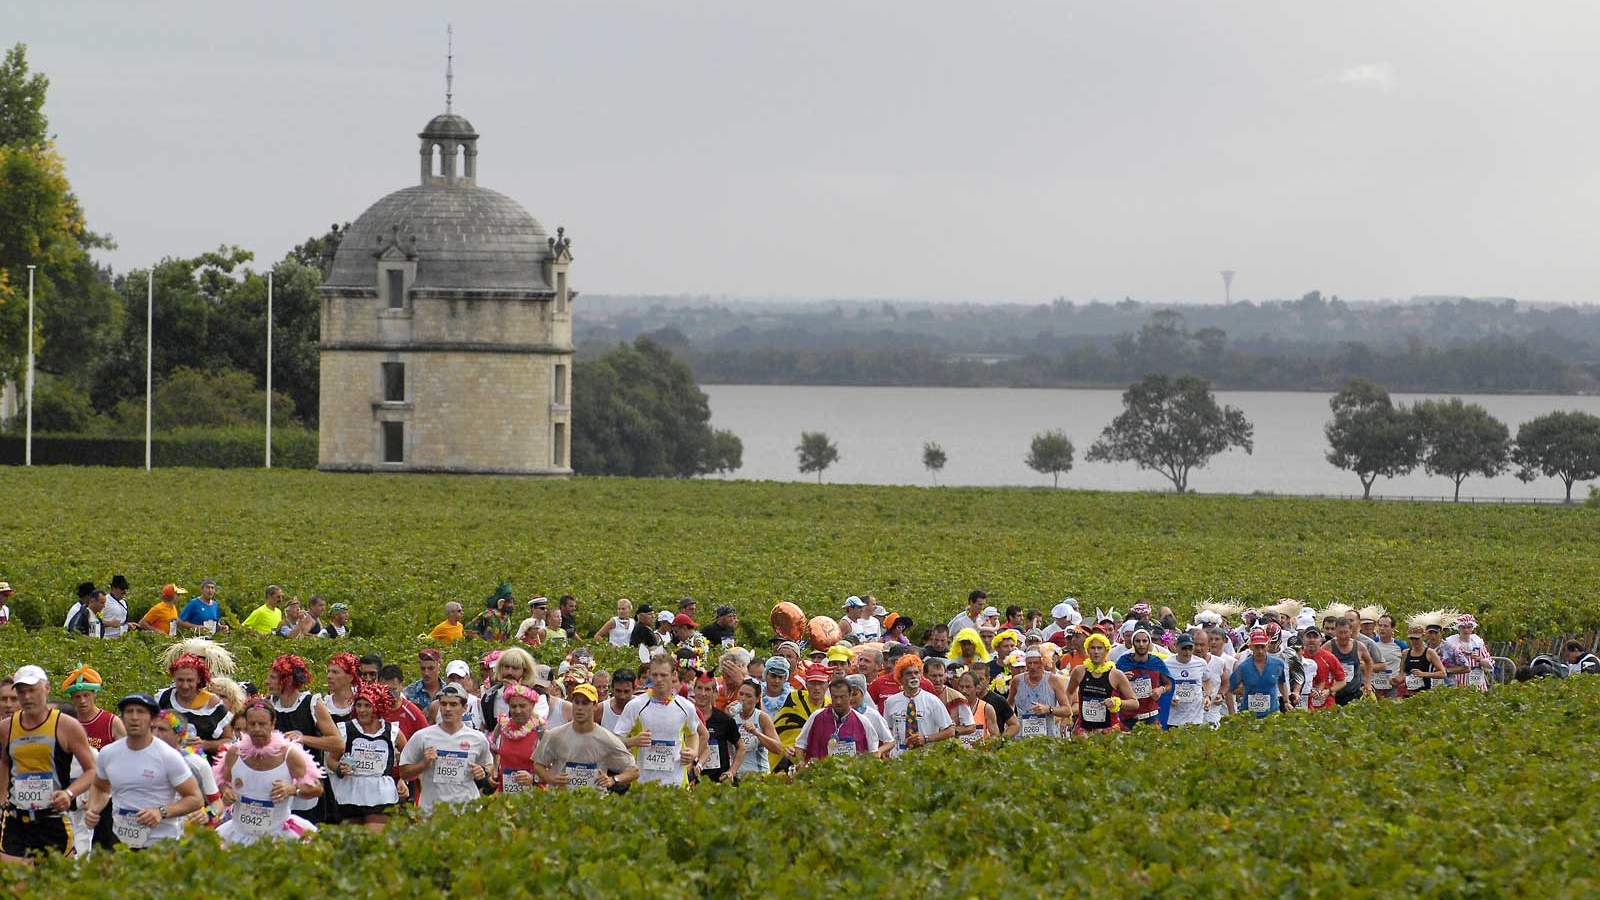 If This Marathon With 23 Wine Tastings Doesn't Make You Want to Run, Nothing Will